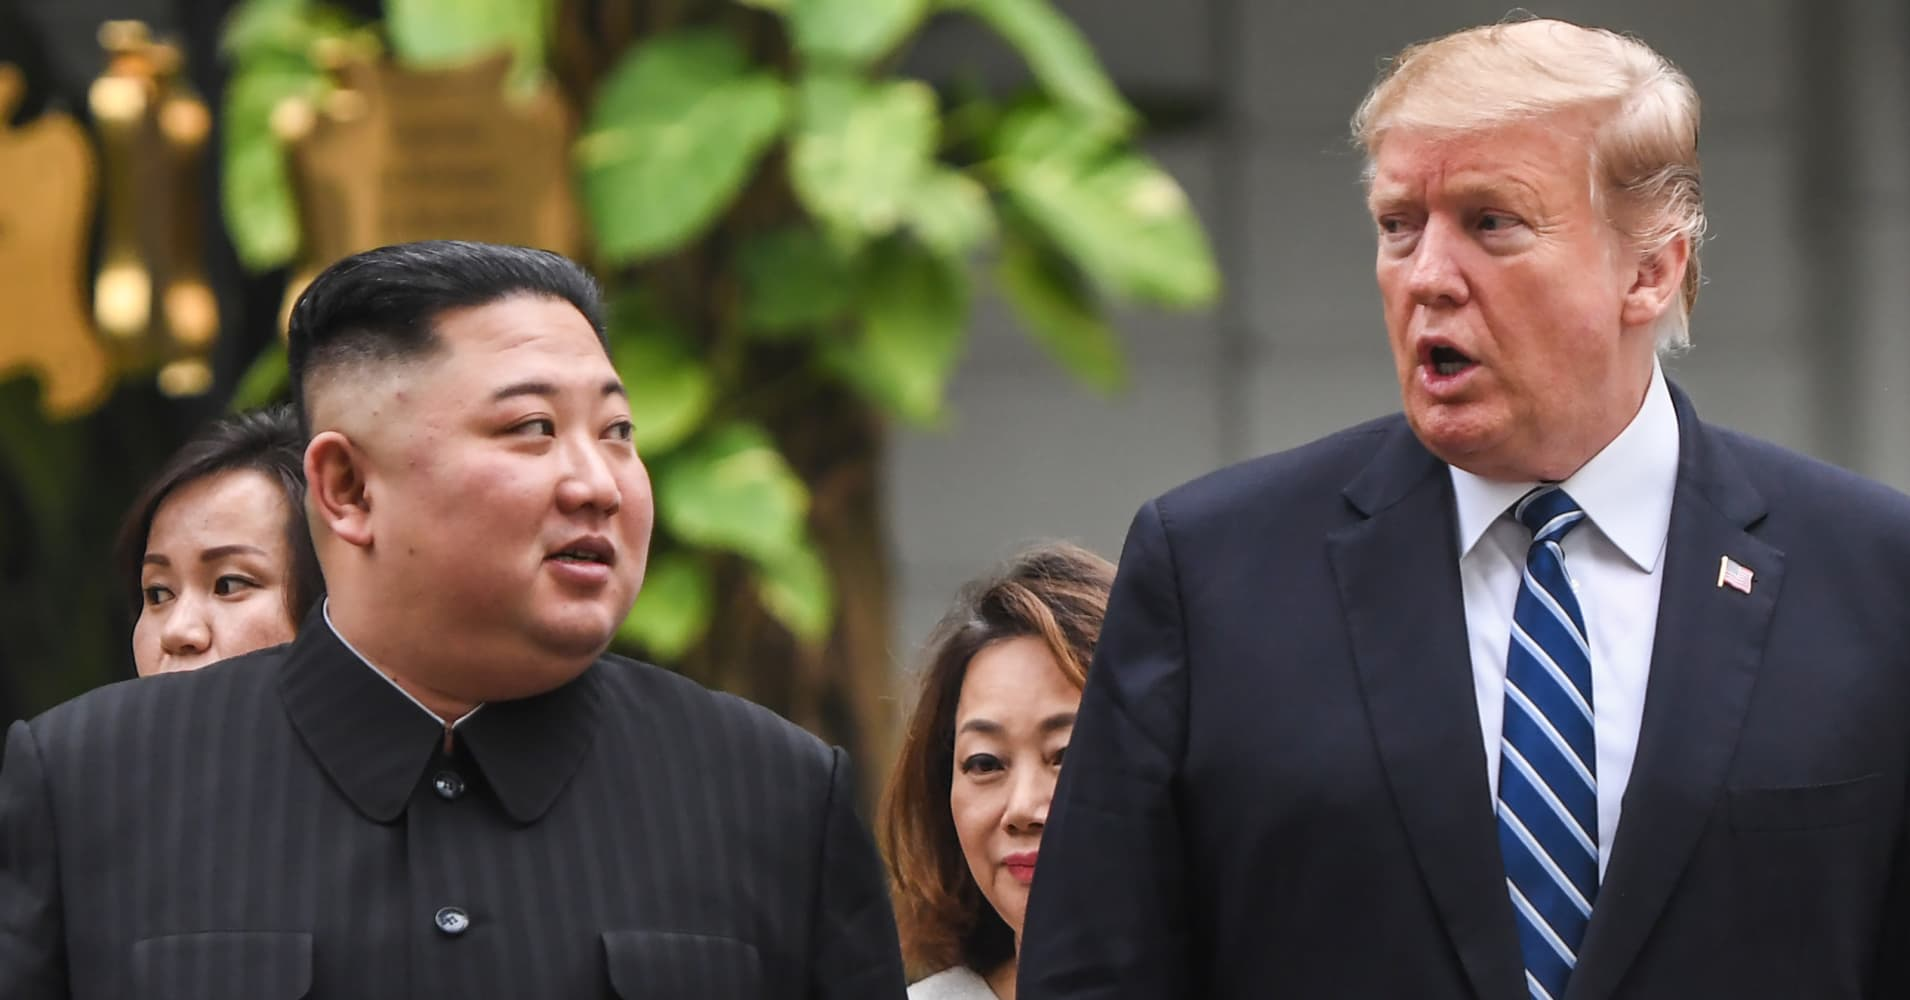 On North Korea giving up nukes, Trump says again and again: 'No rush'